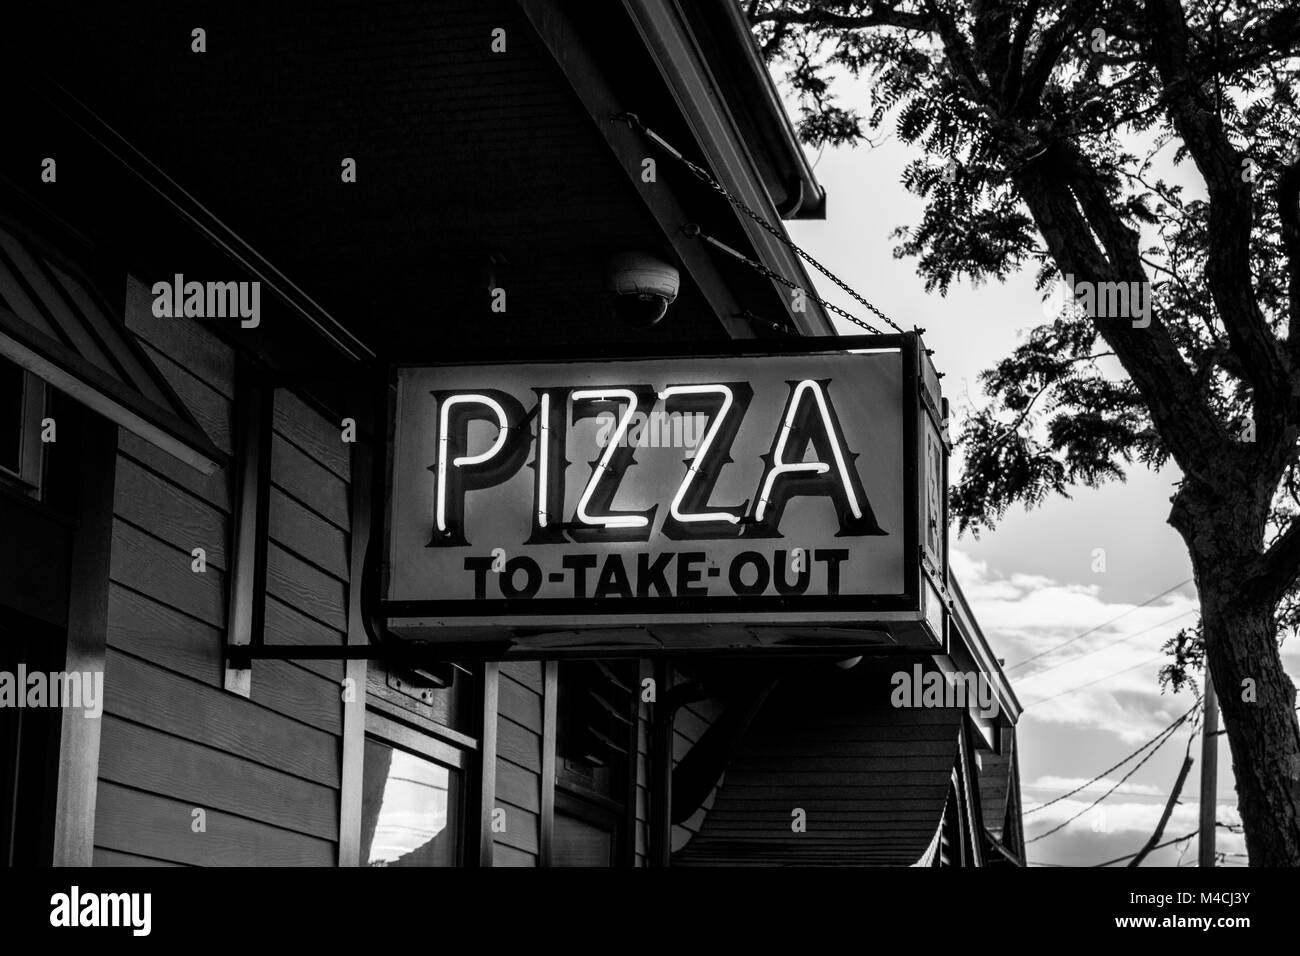 Pizza to take out. Black and white. - Stock Image